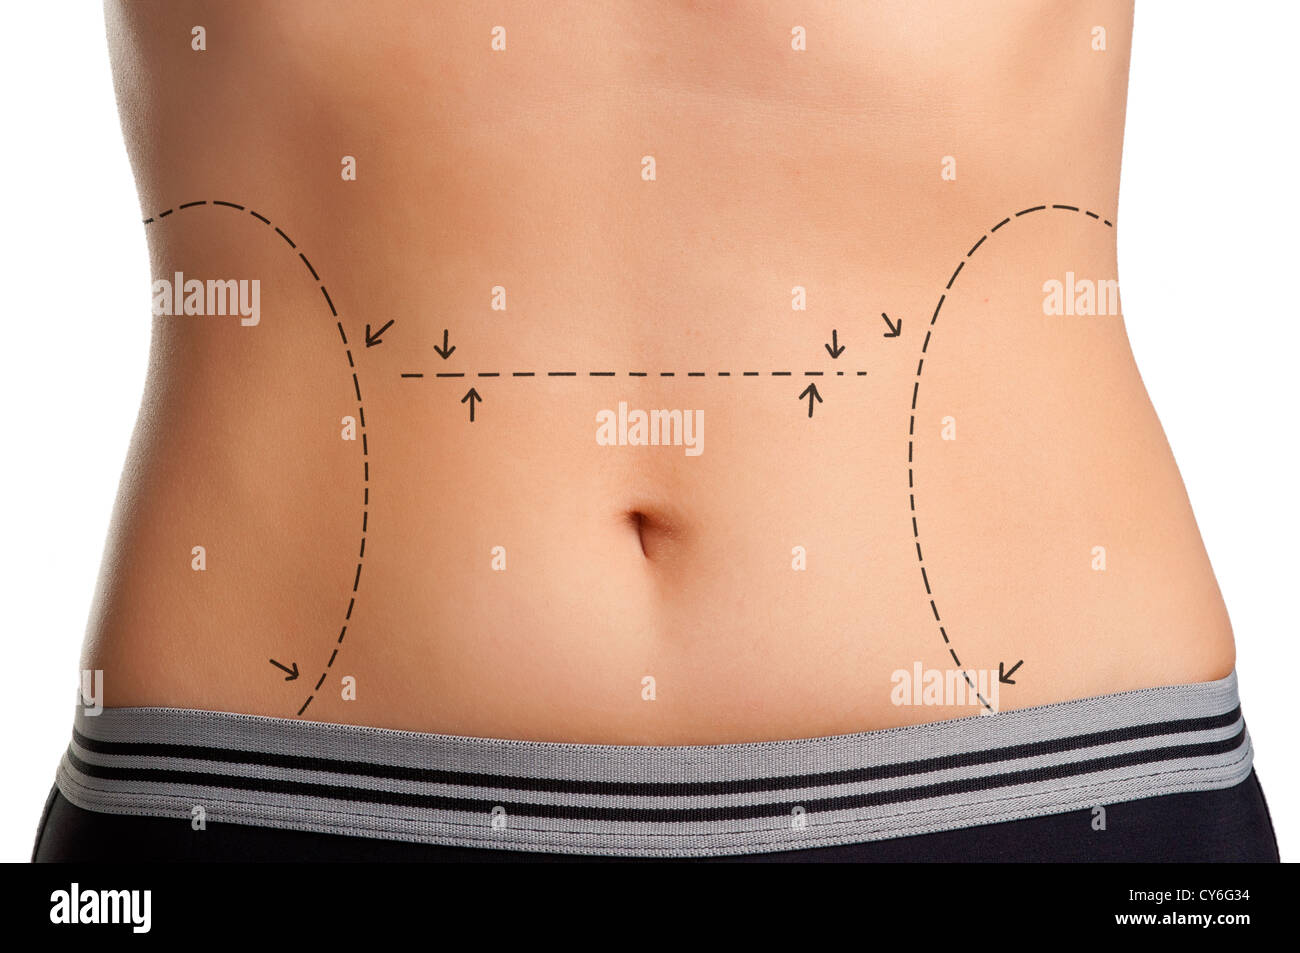 Tummy marked for plastic surgery - Stock Image